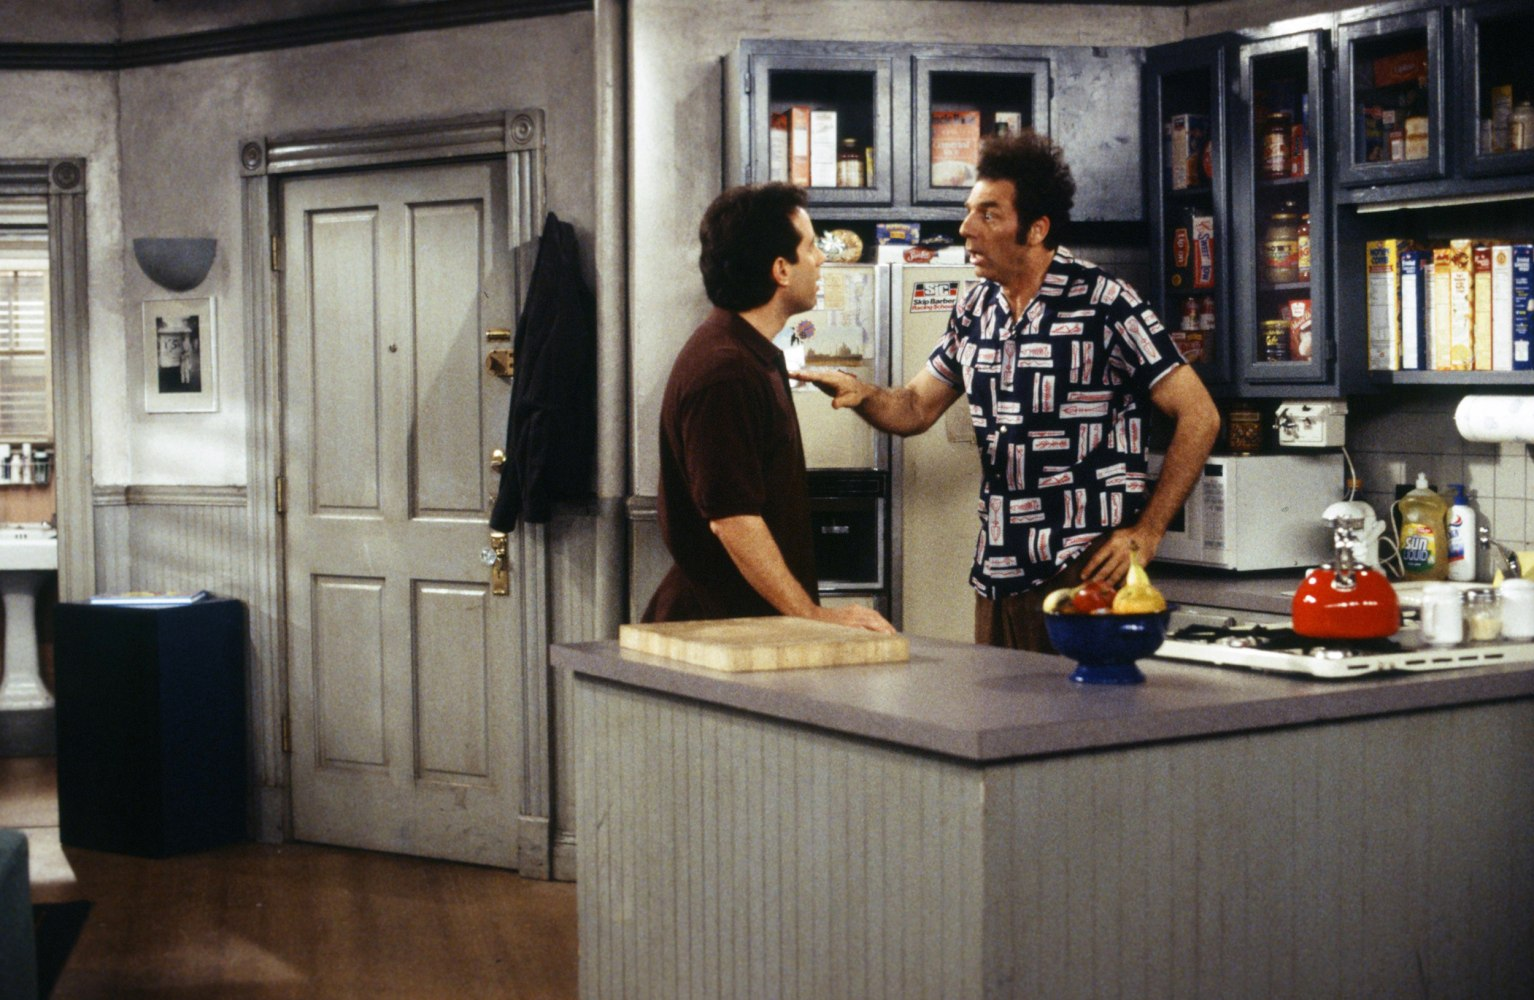 Seinfeldia new book shows how 90s sitcom is actually about image a scene from the seinfeld series finale geotapseo Image collections